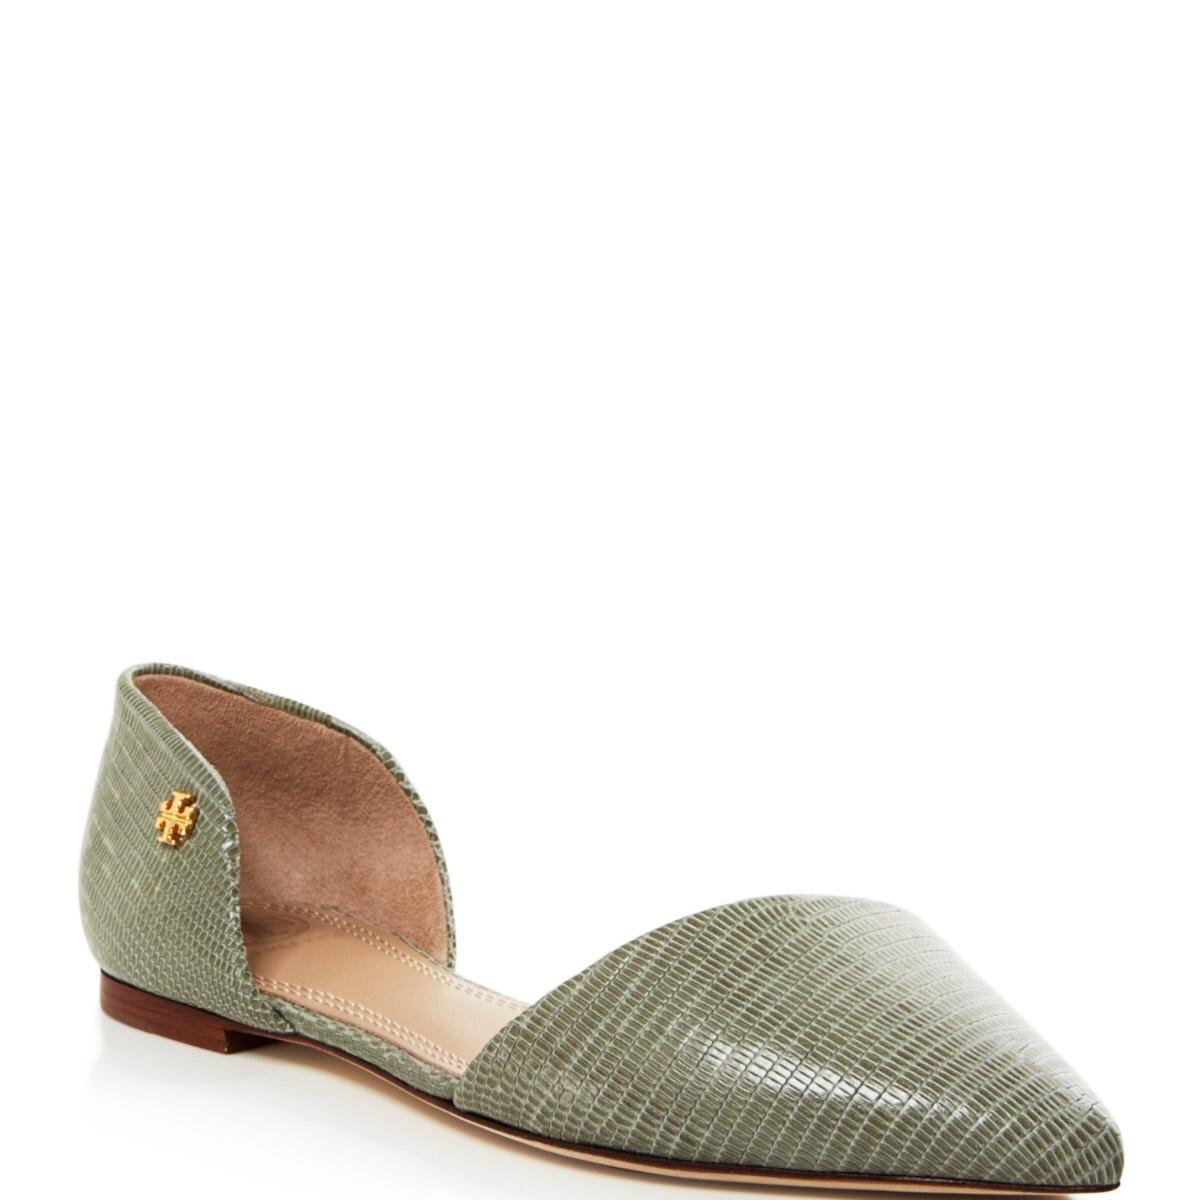 Tory Burch Gray, Green Flats ...